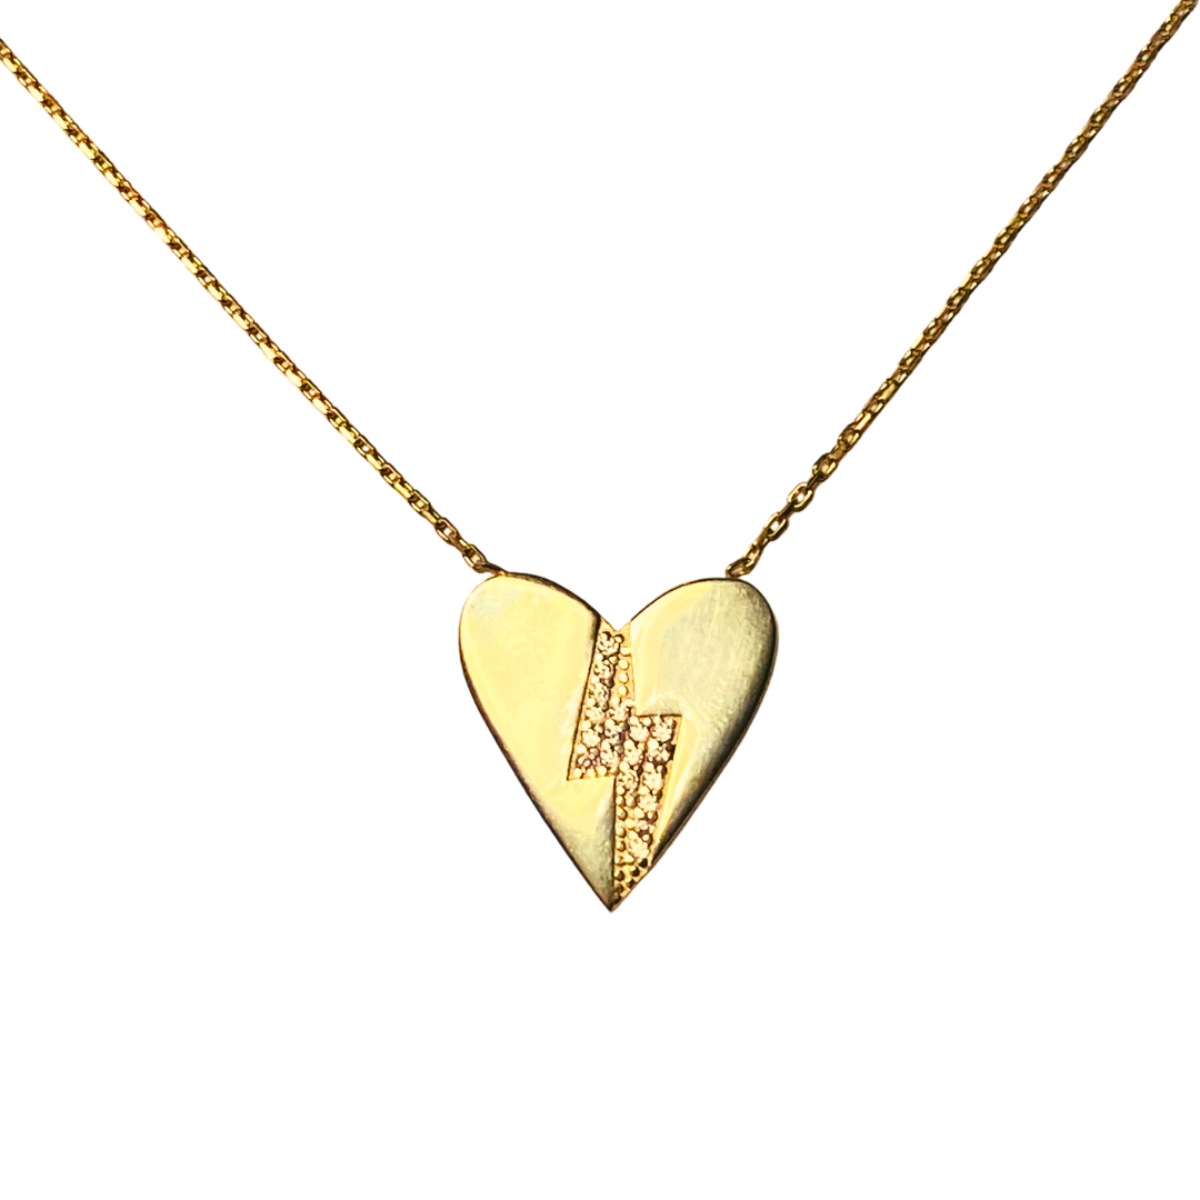 LOVE STRIKES NECKLACE